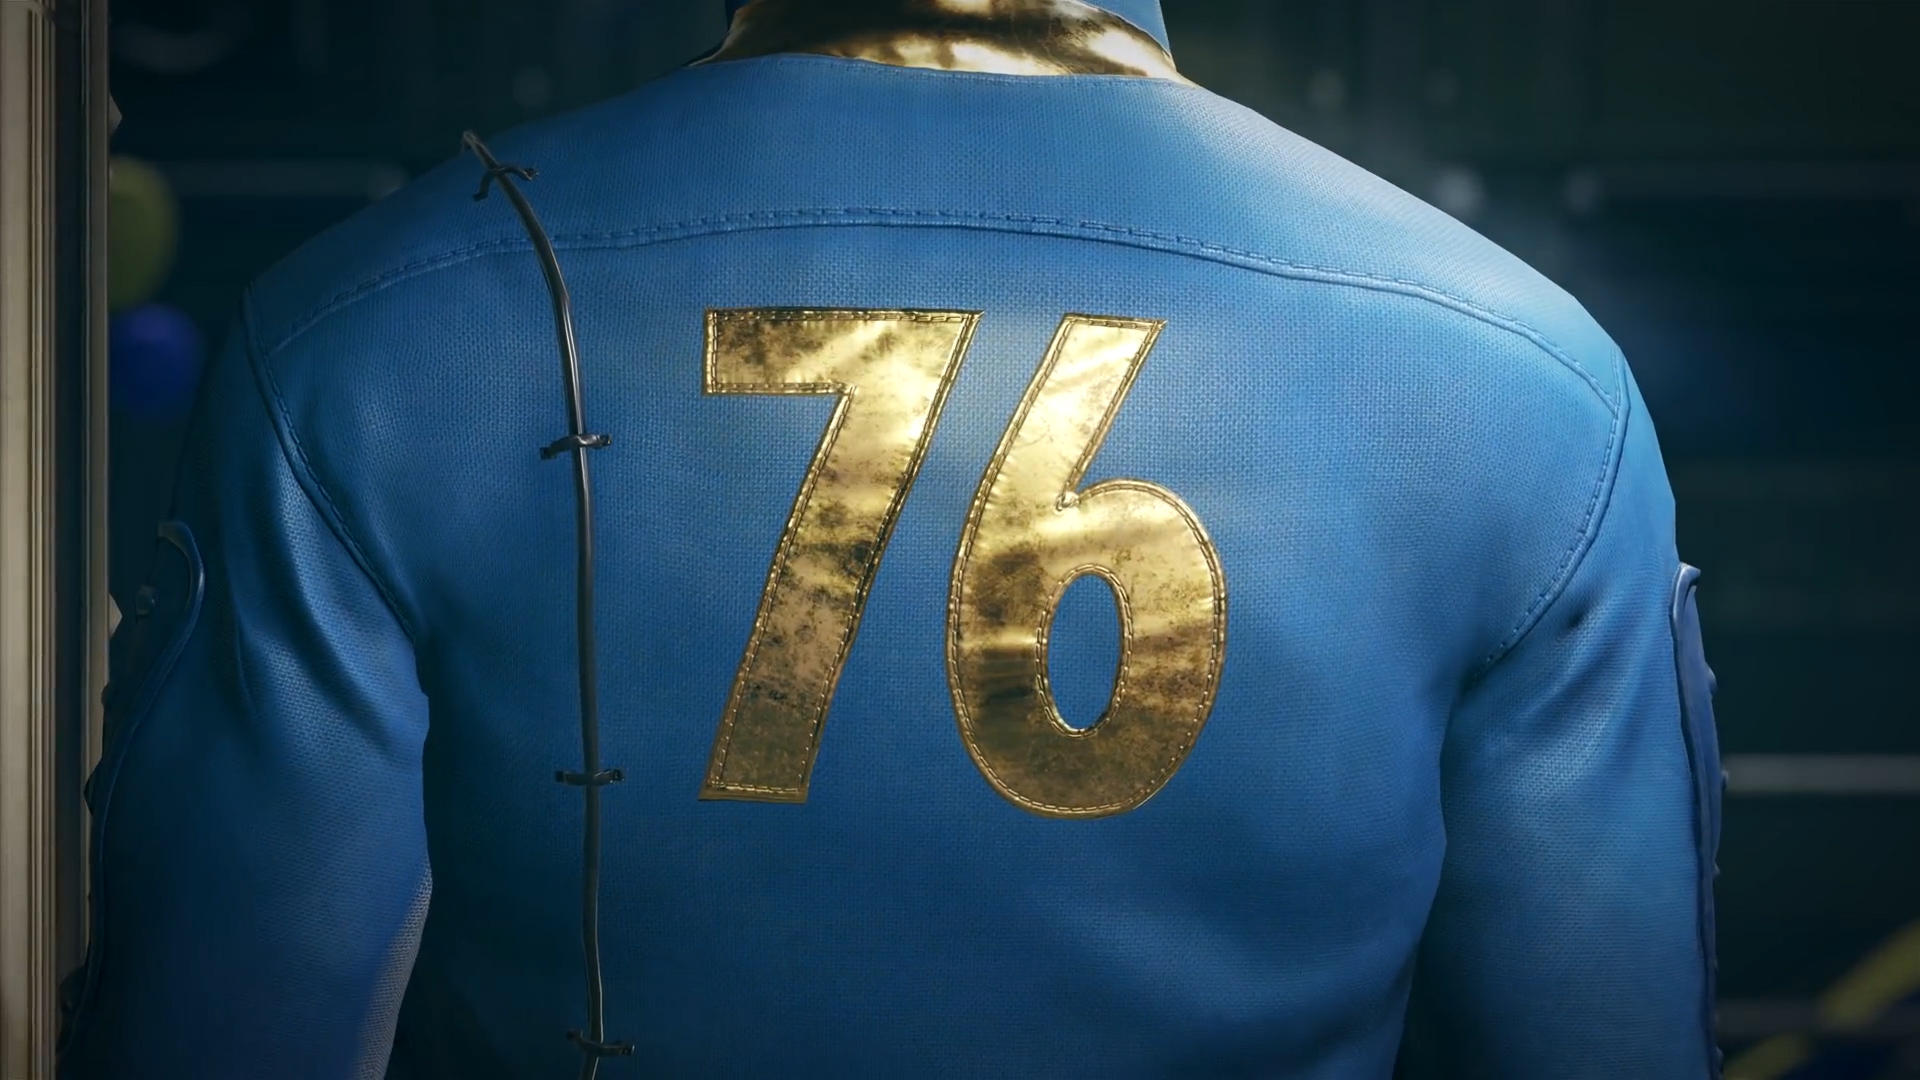 fallout-76-official-teaser-trailer-mp4-00-01-15-26-still004